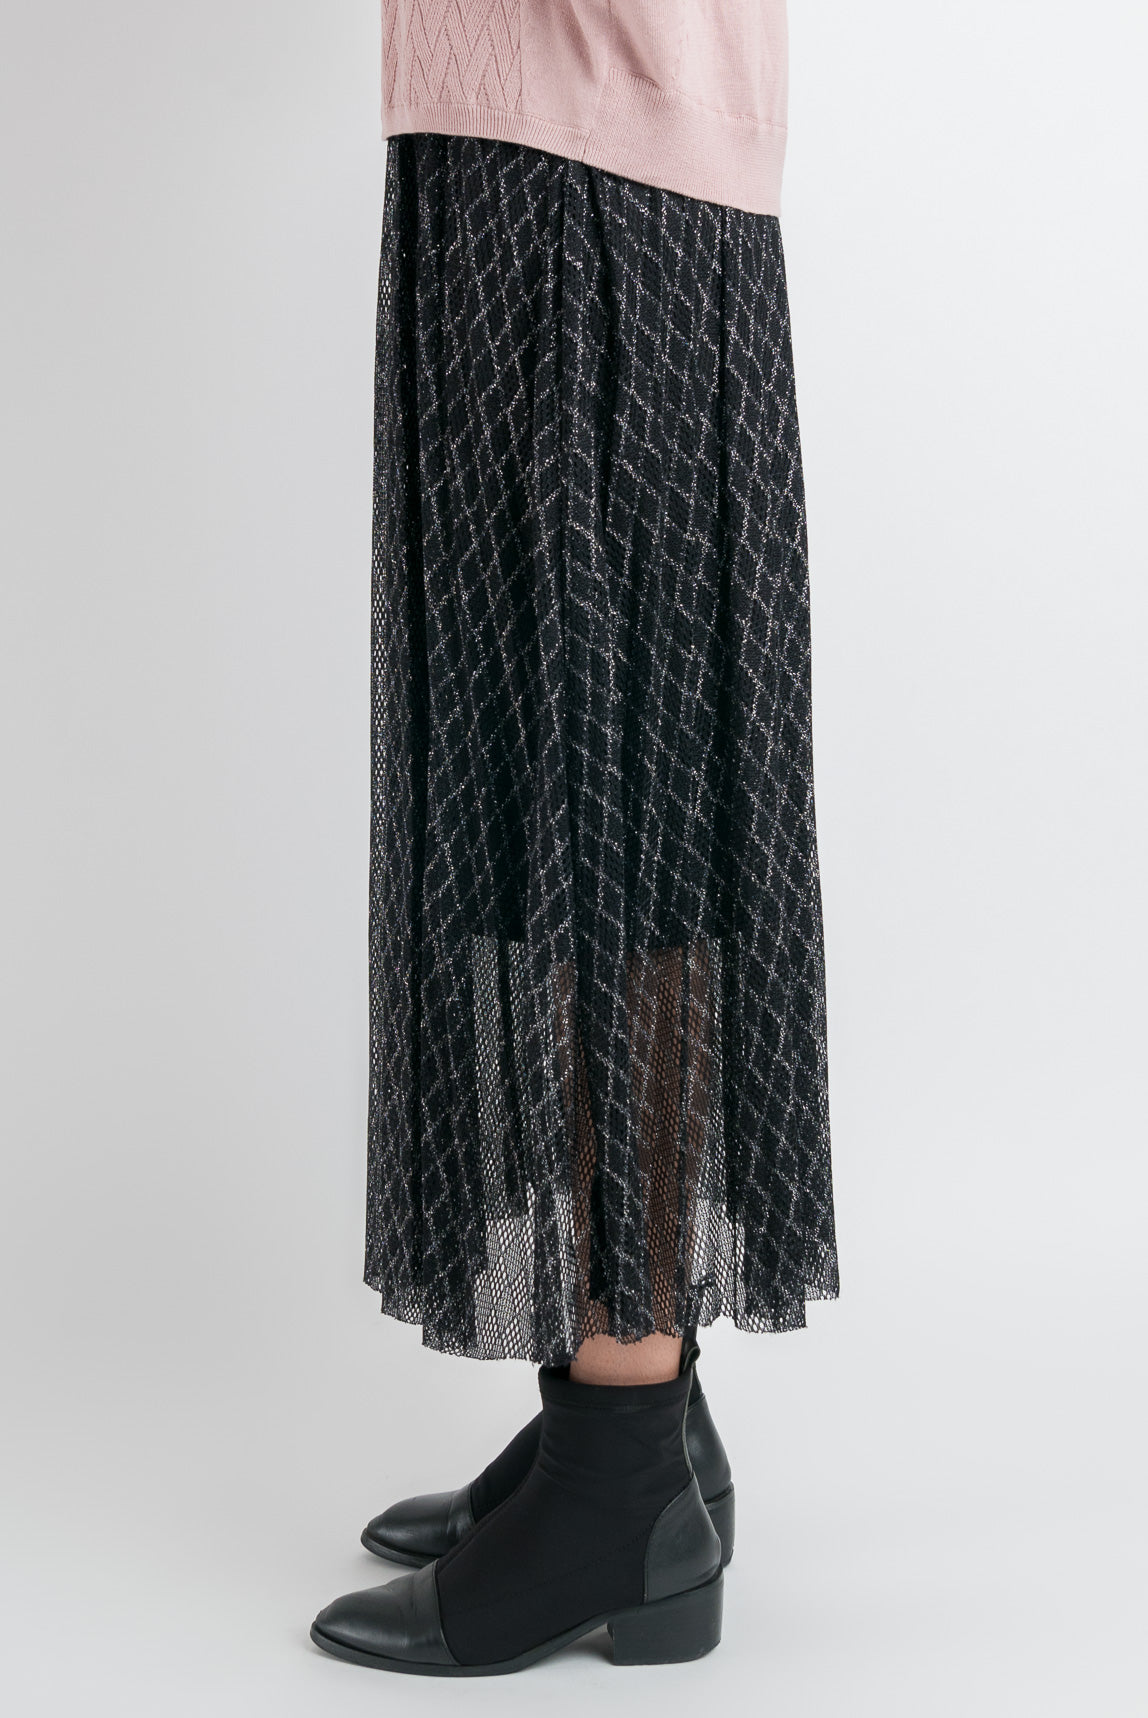 Mesh Pleated Skirt - Black Lace